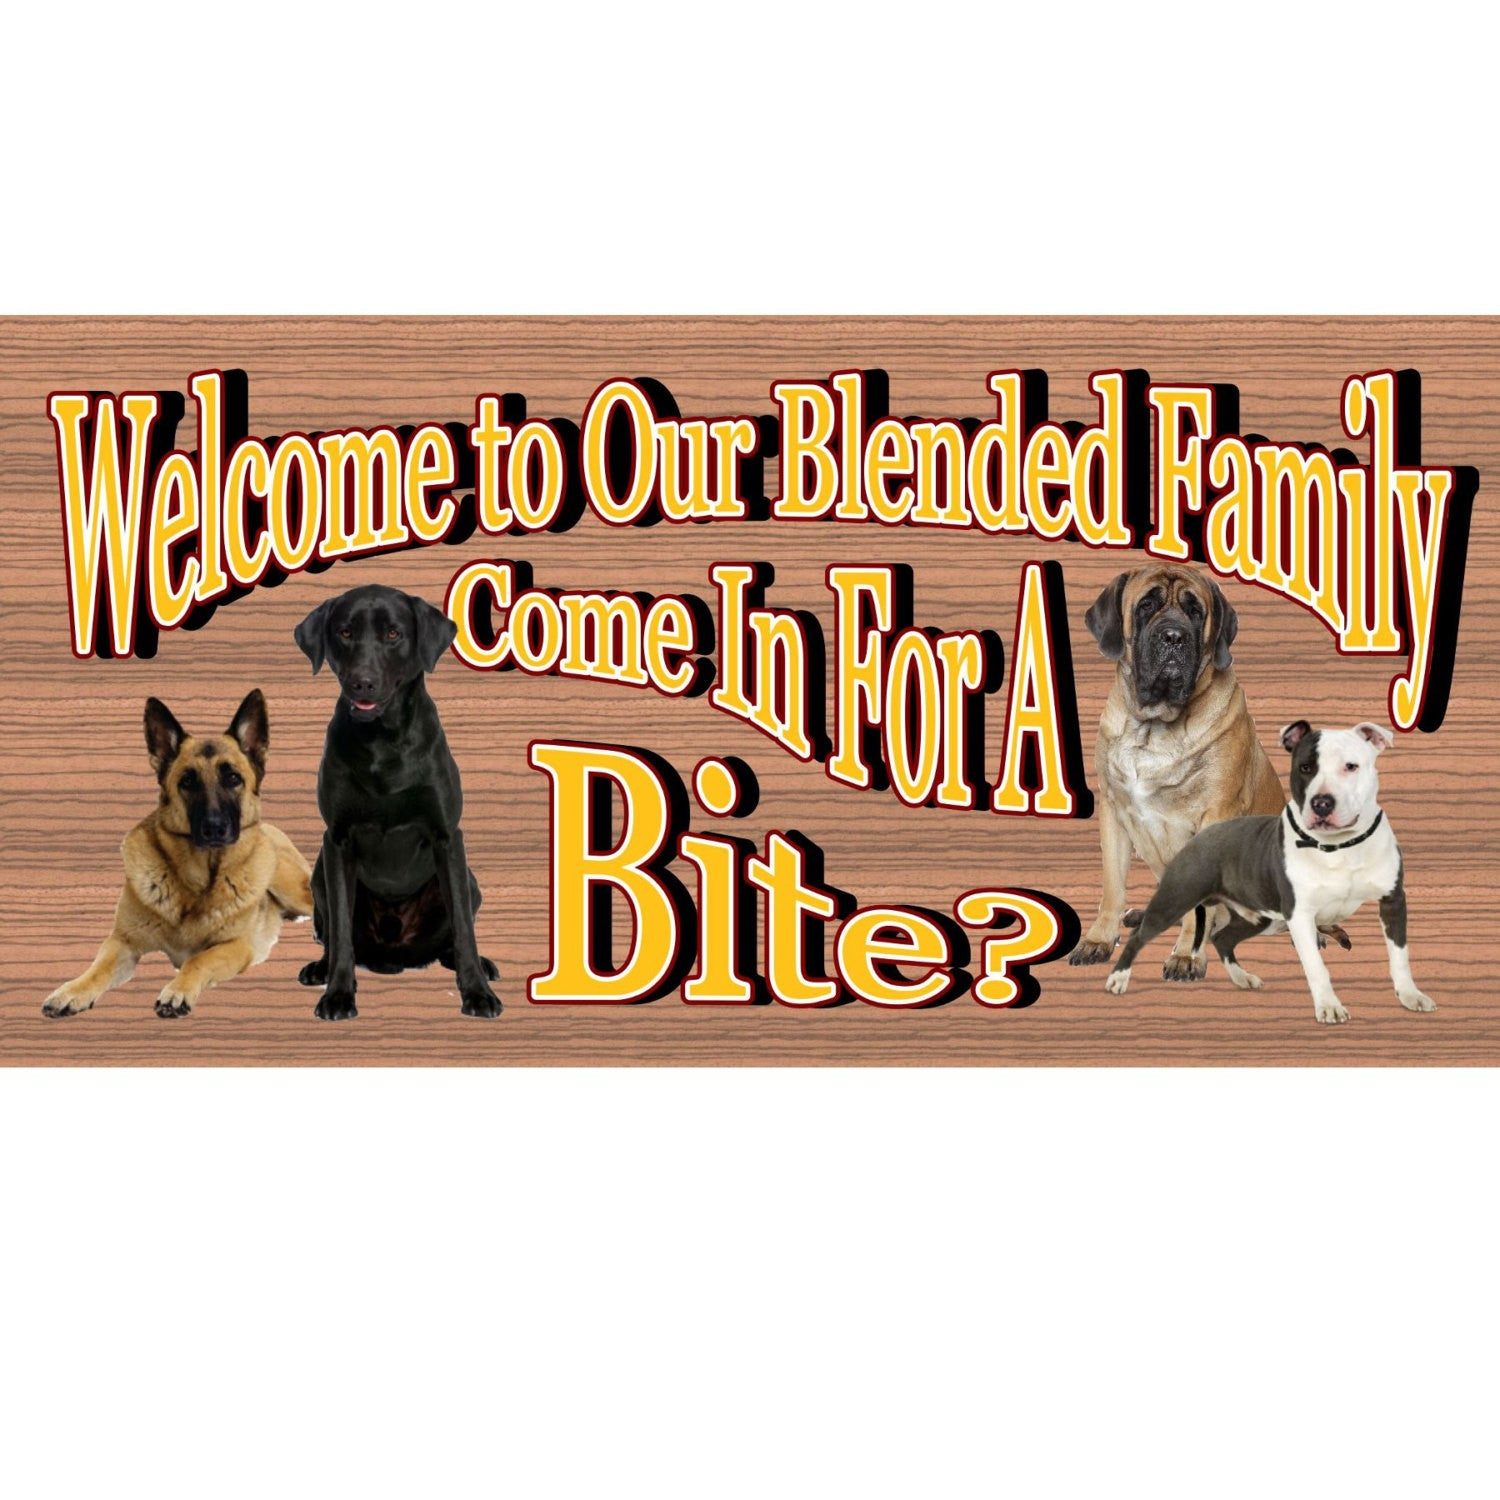 Dog Wood Signs -Dog Sign - Wooden Dog Plaque GS885